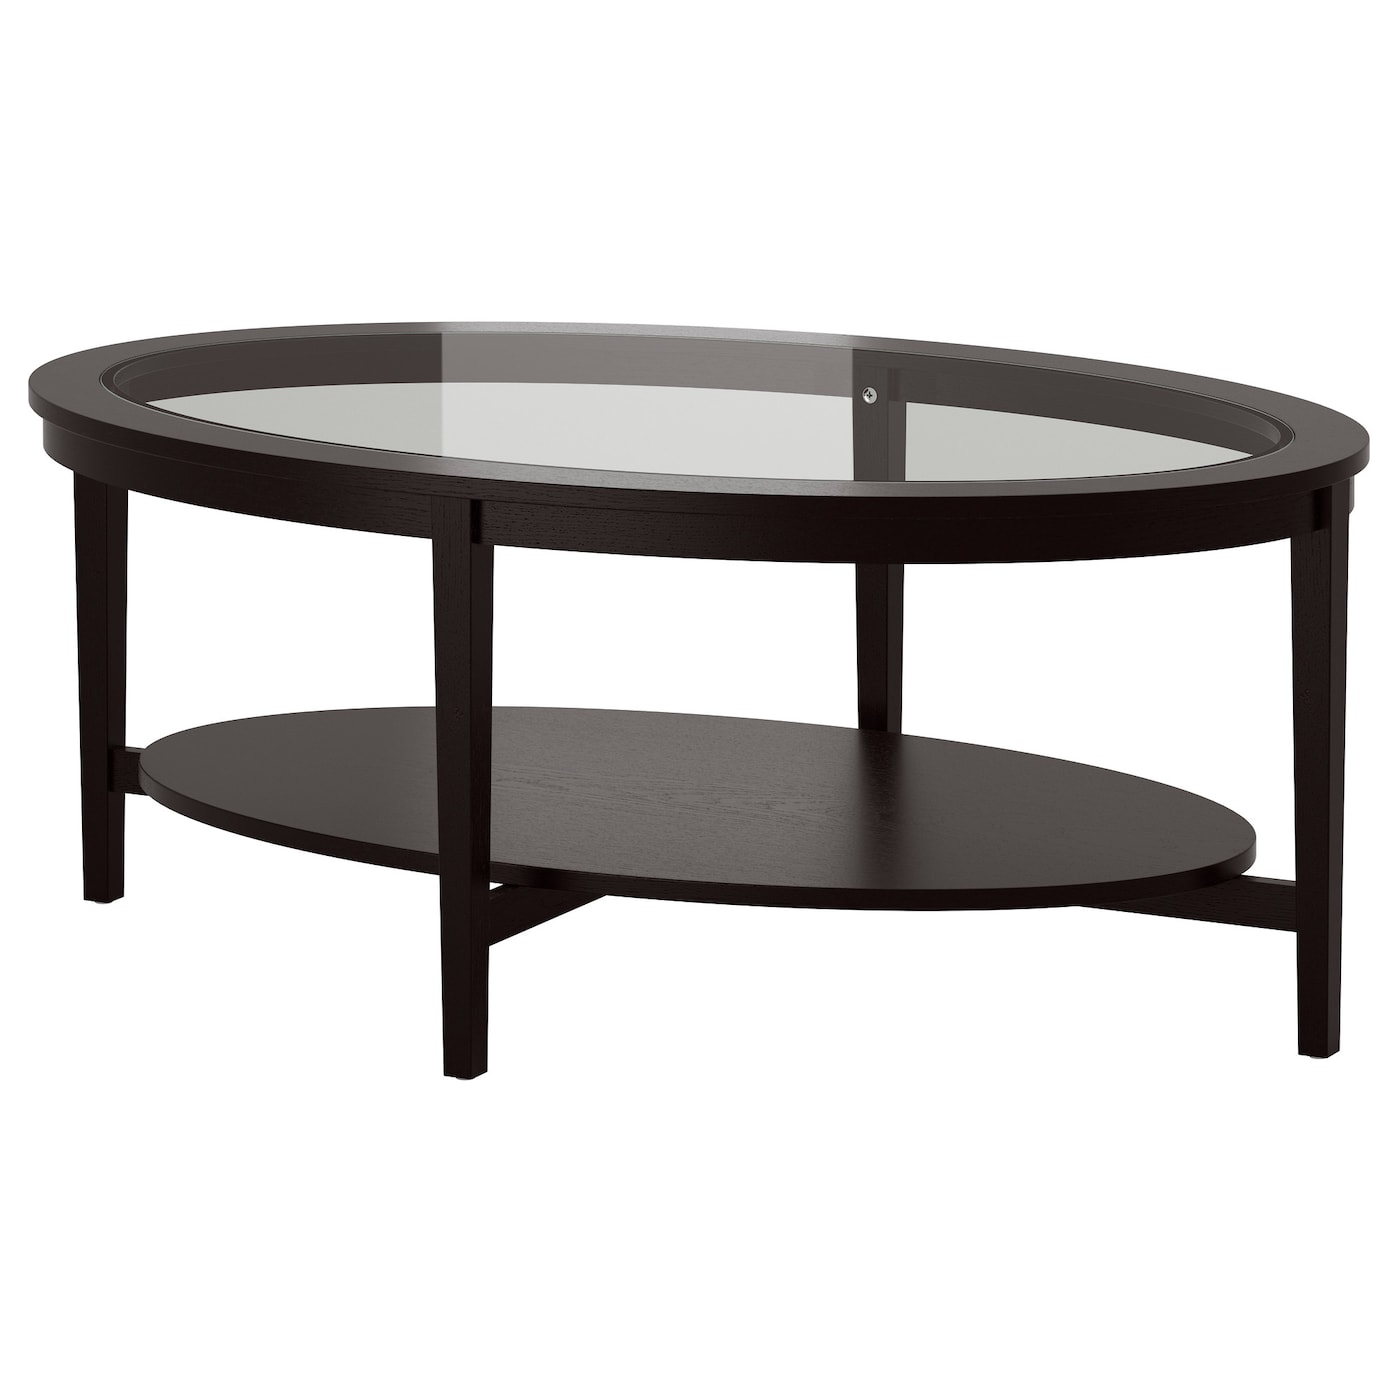 Malmsta coffee table black brown 130x80 cm ikea Black and white coffee table